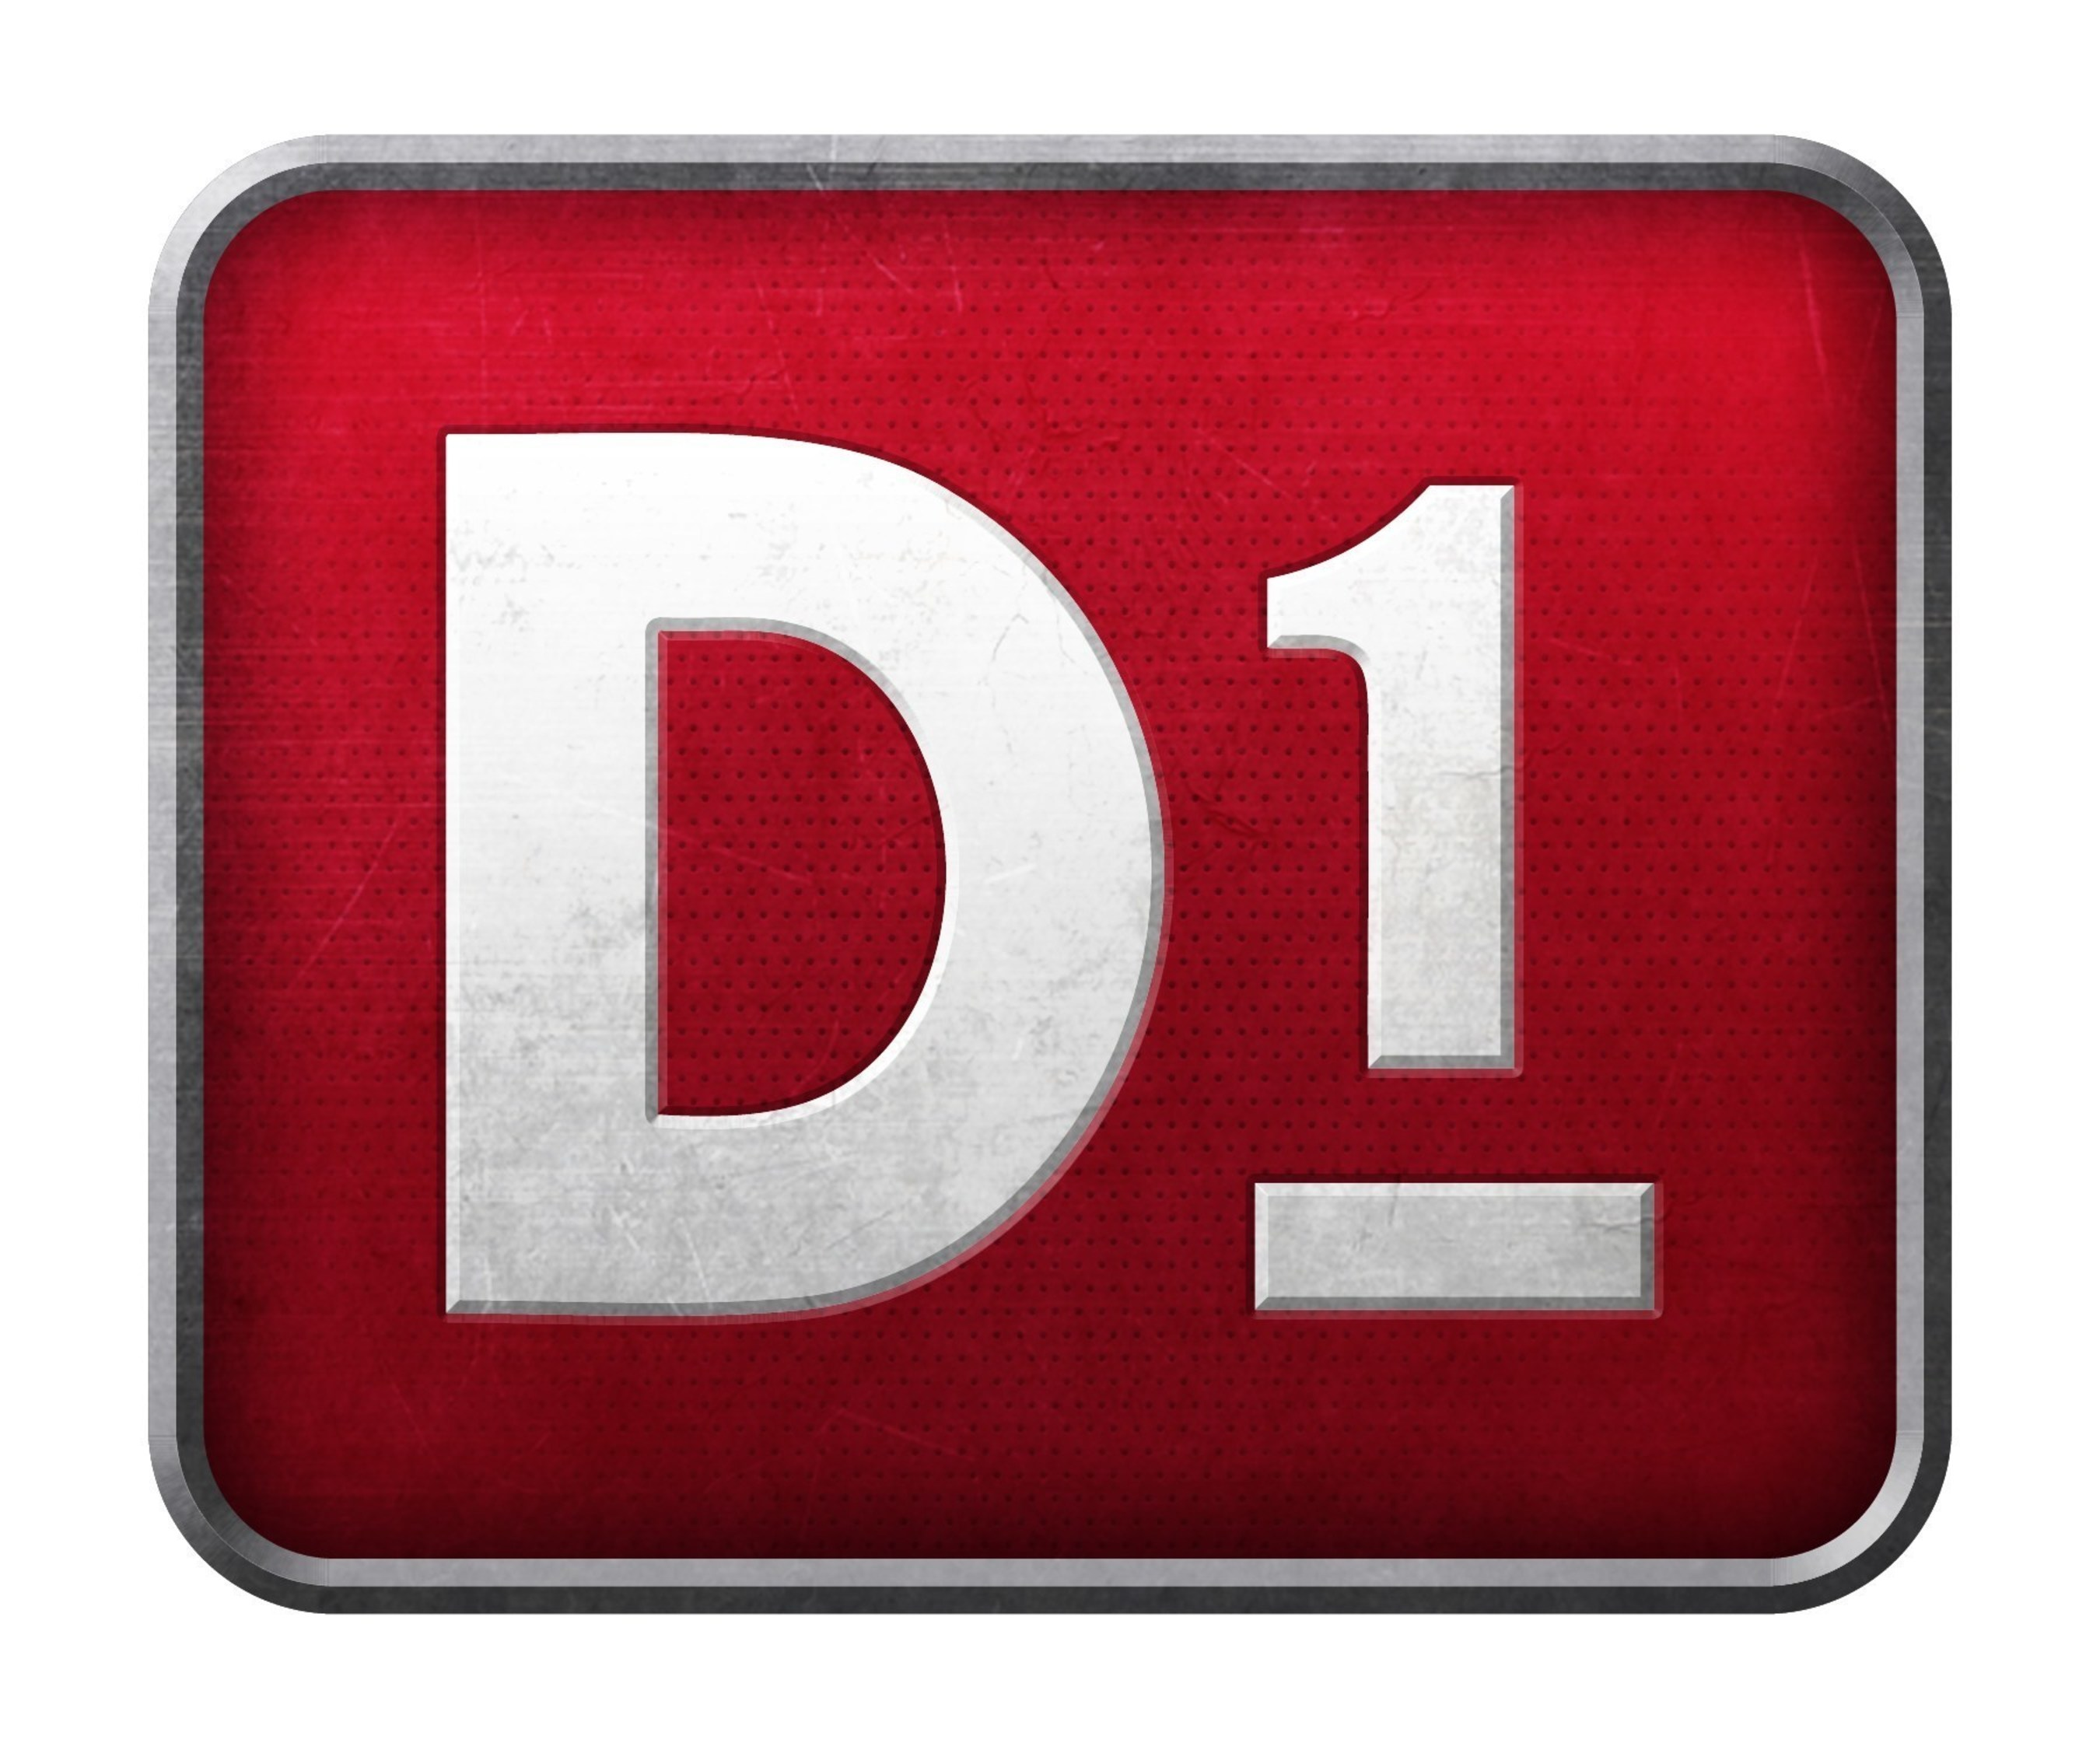 D1 Launches New Sports Training Facilities Nationwide